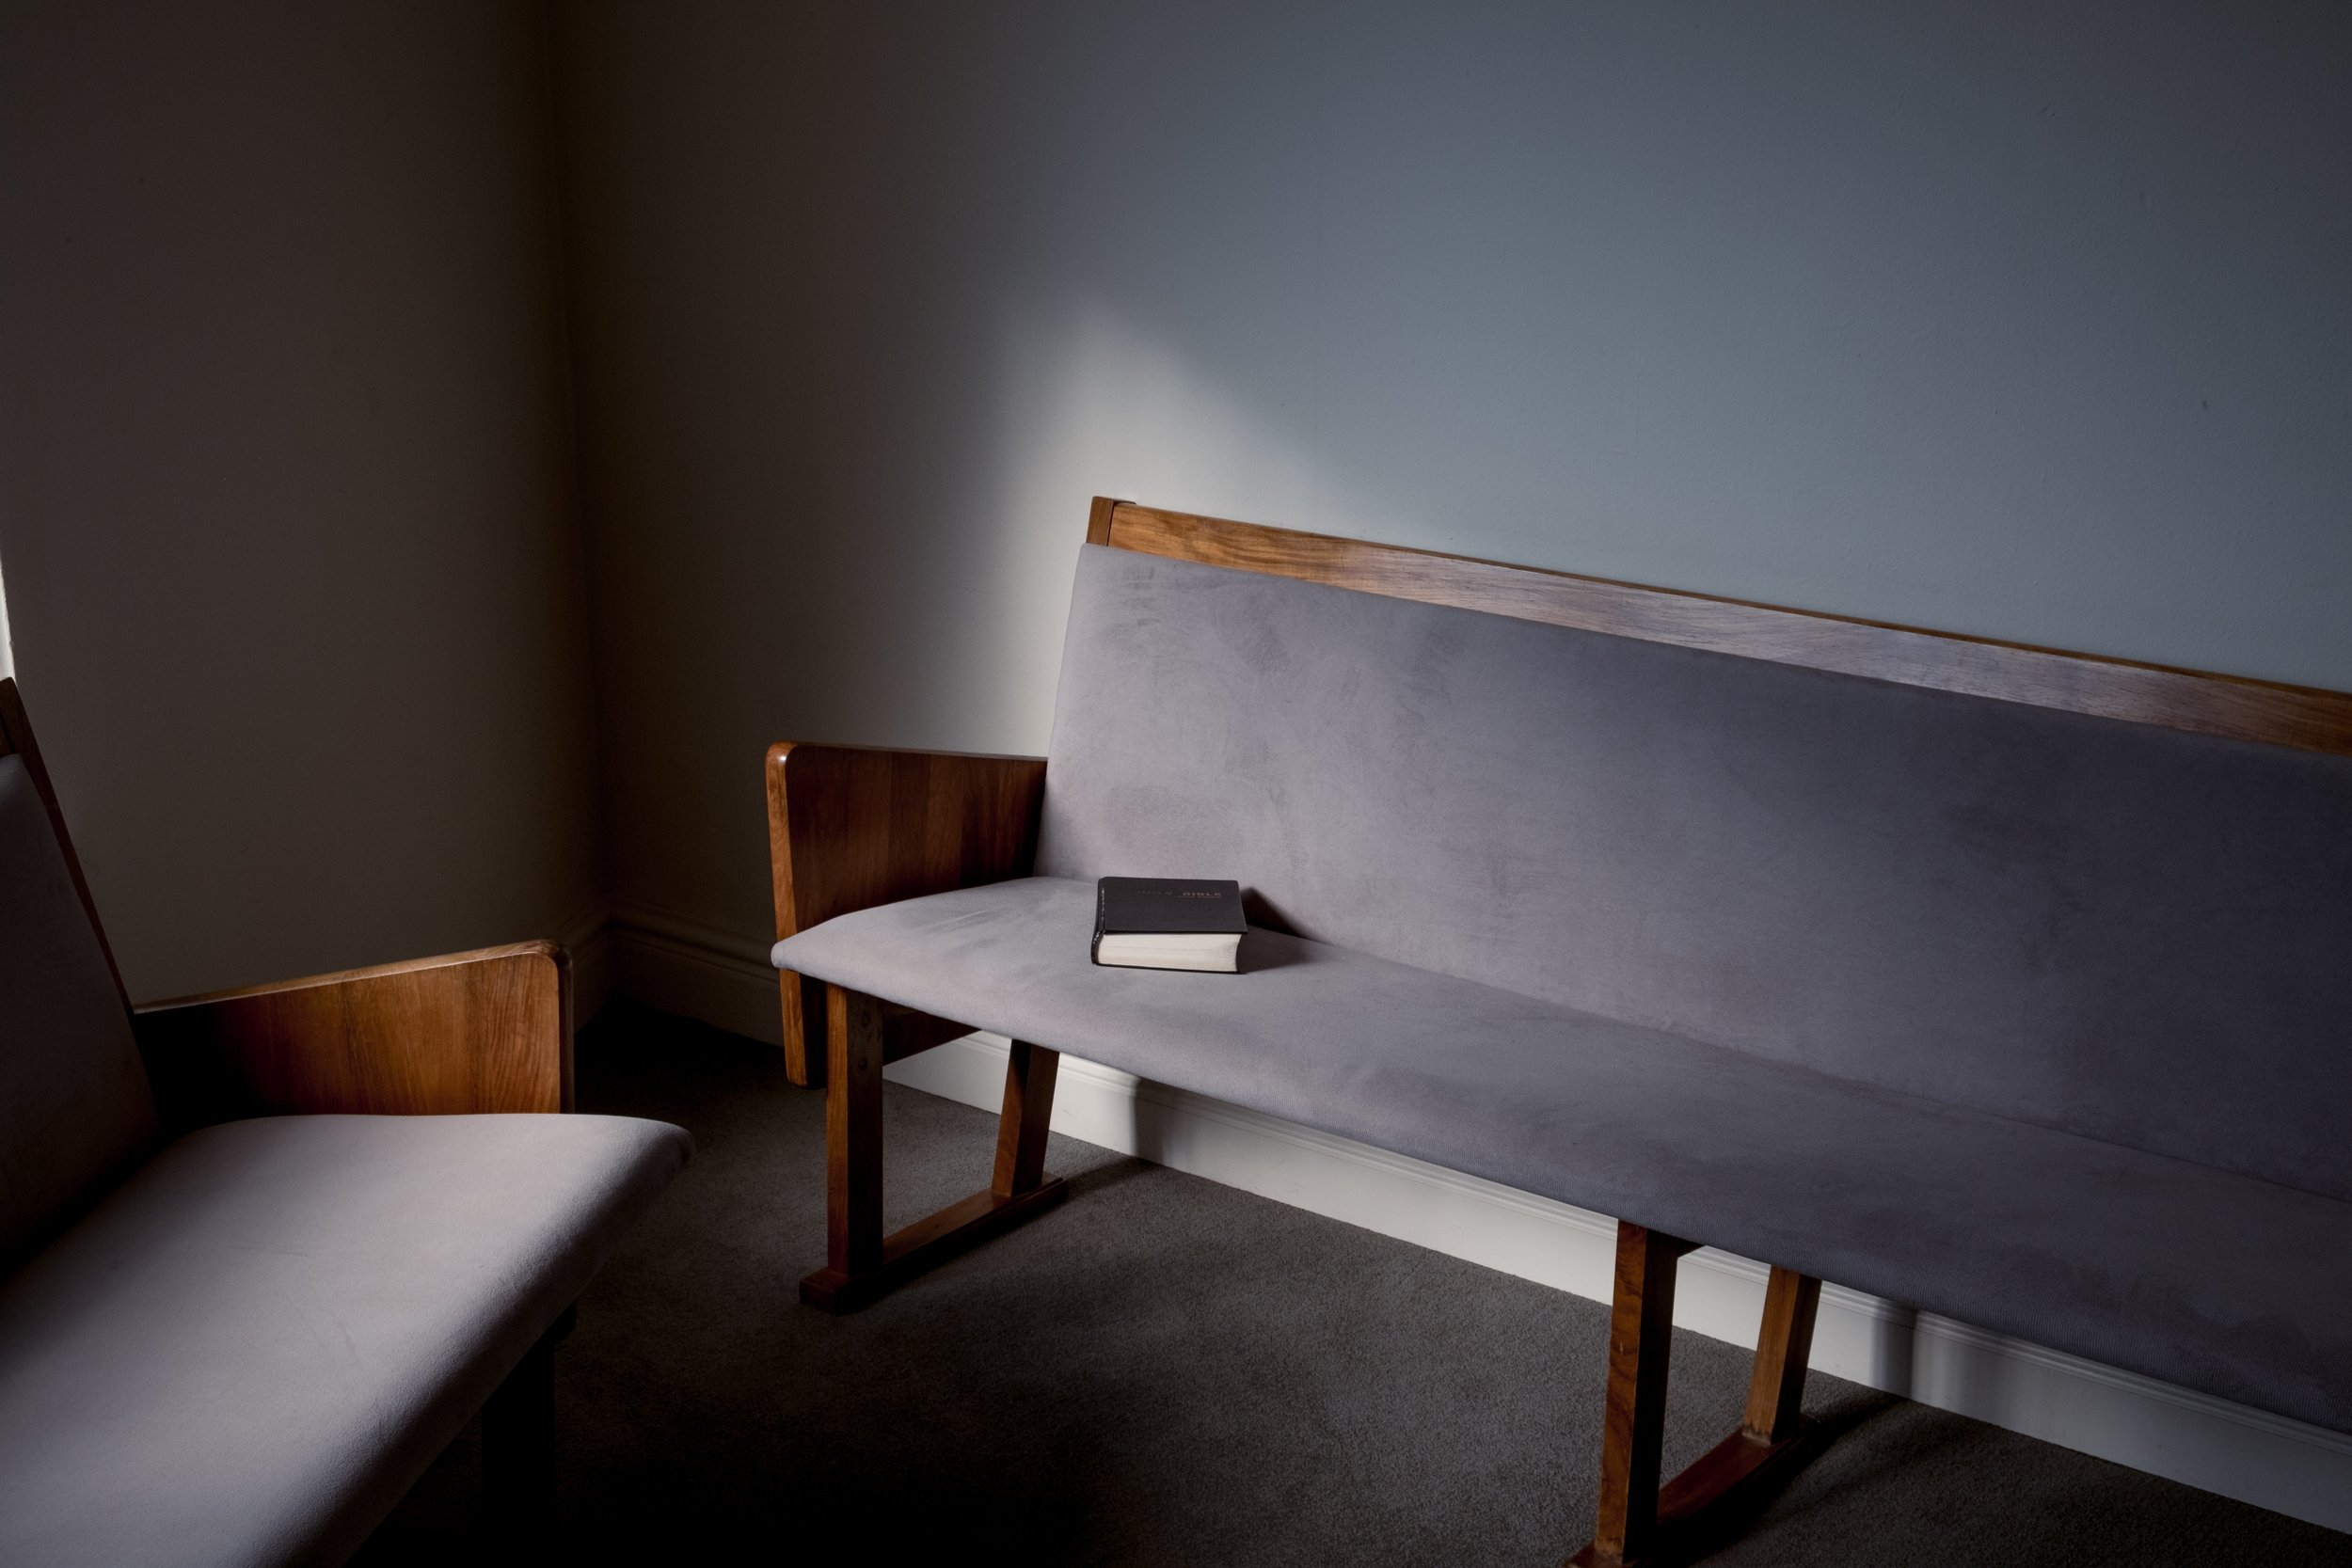 Church bench seats with Bible.jpg